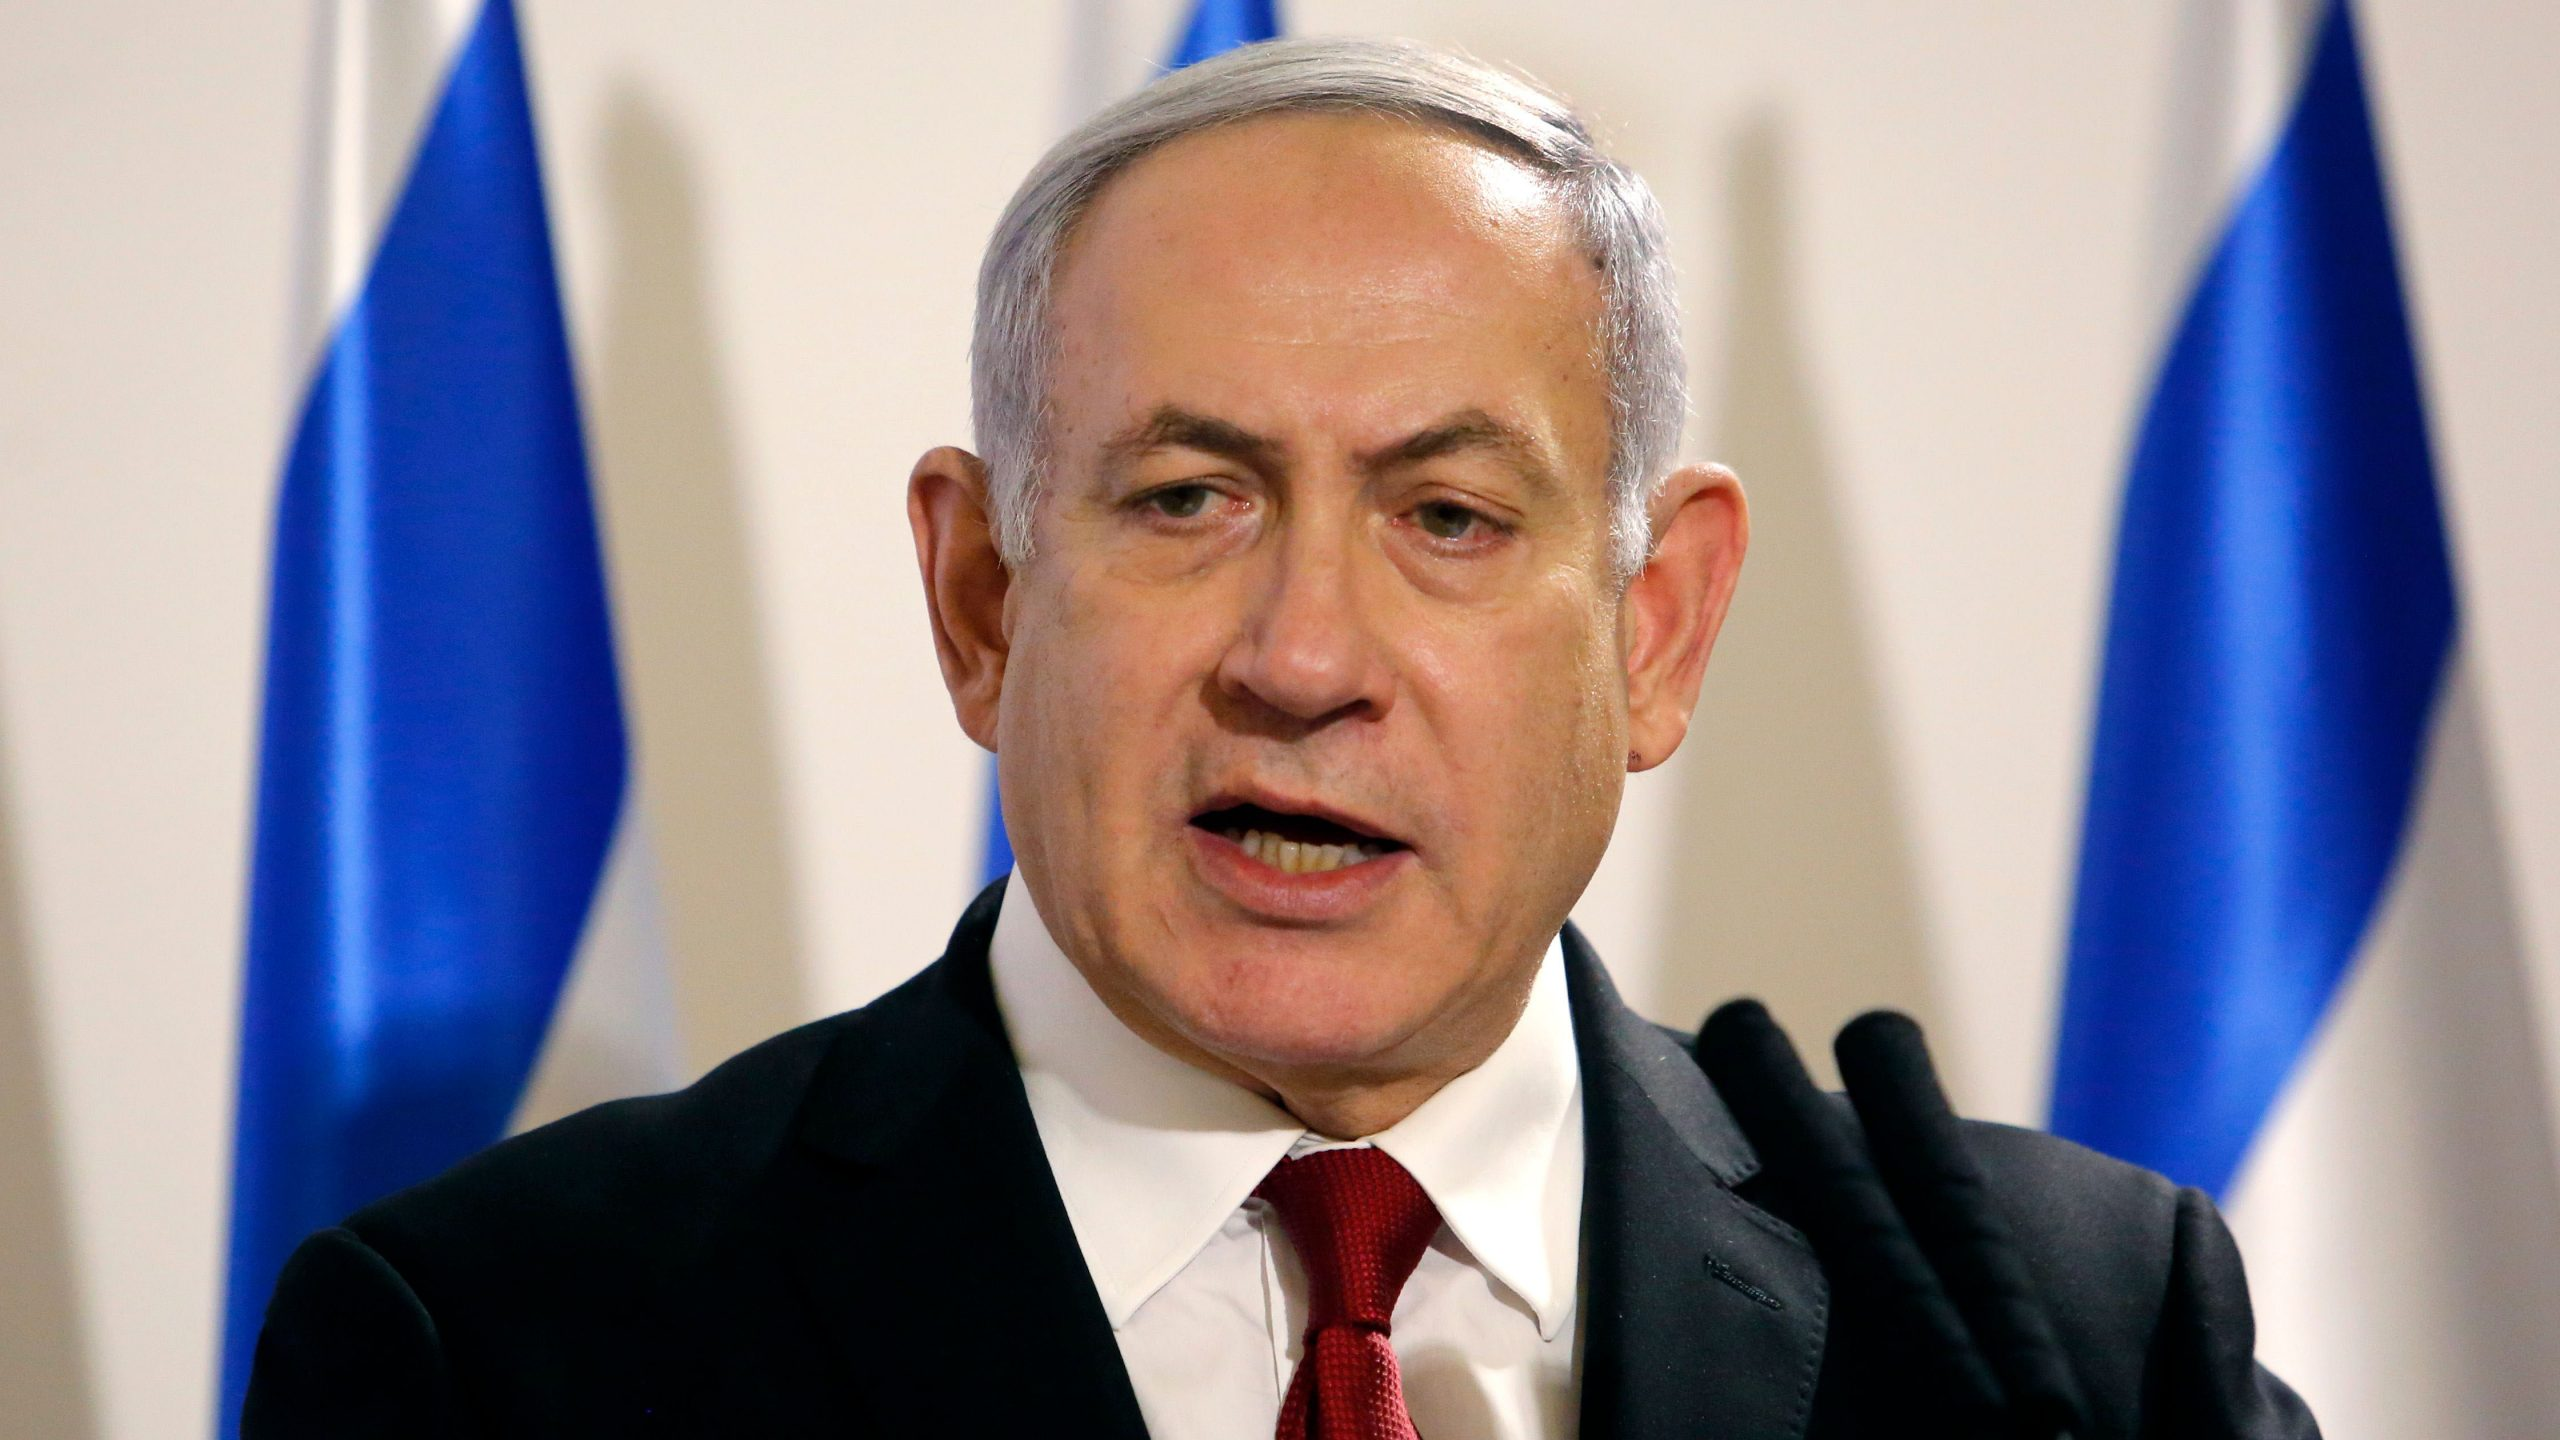 Netanyahu Promises 'Full Force' Response: Terrorists 'Will Pay A Very Heavy Price For Their Aggression'